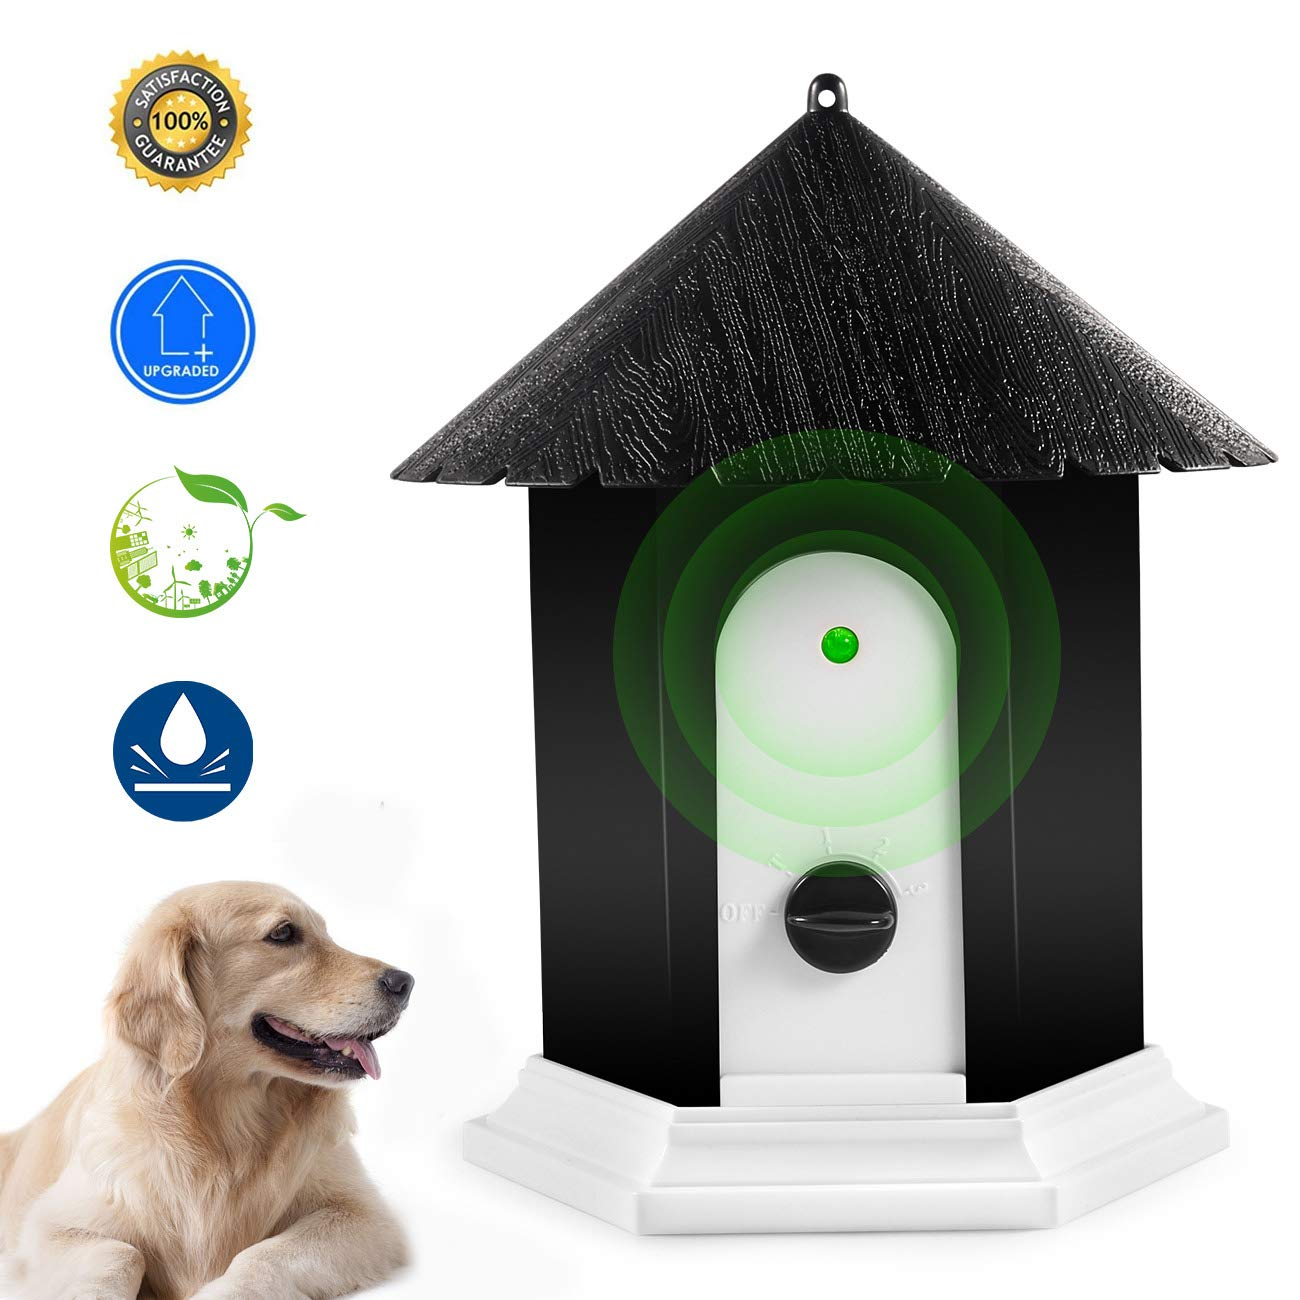 Anti Barking Device, Ultrasonic Barking Control Device, Waterproof Outdoor Anti Bark Deterrents in Birdhouse Shape by Humutan